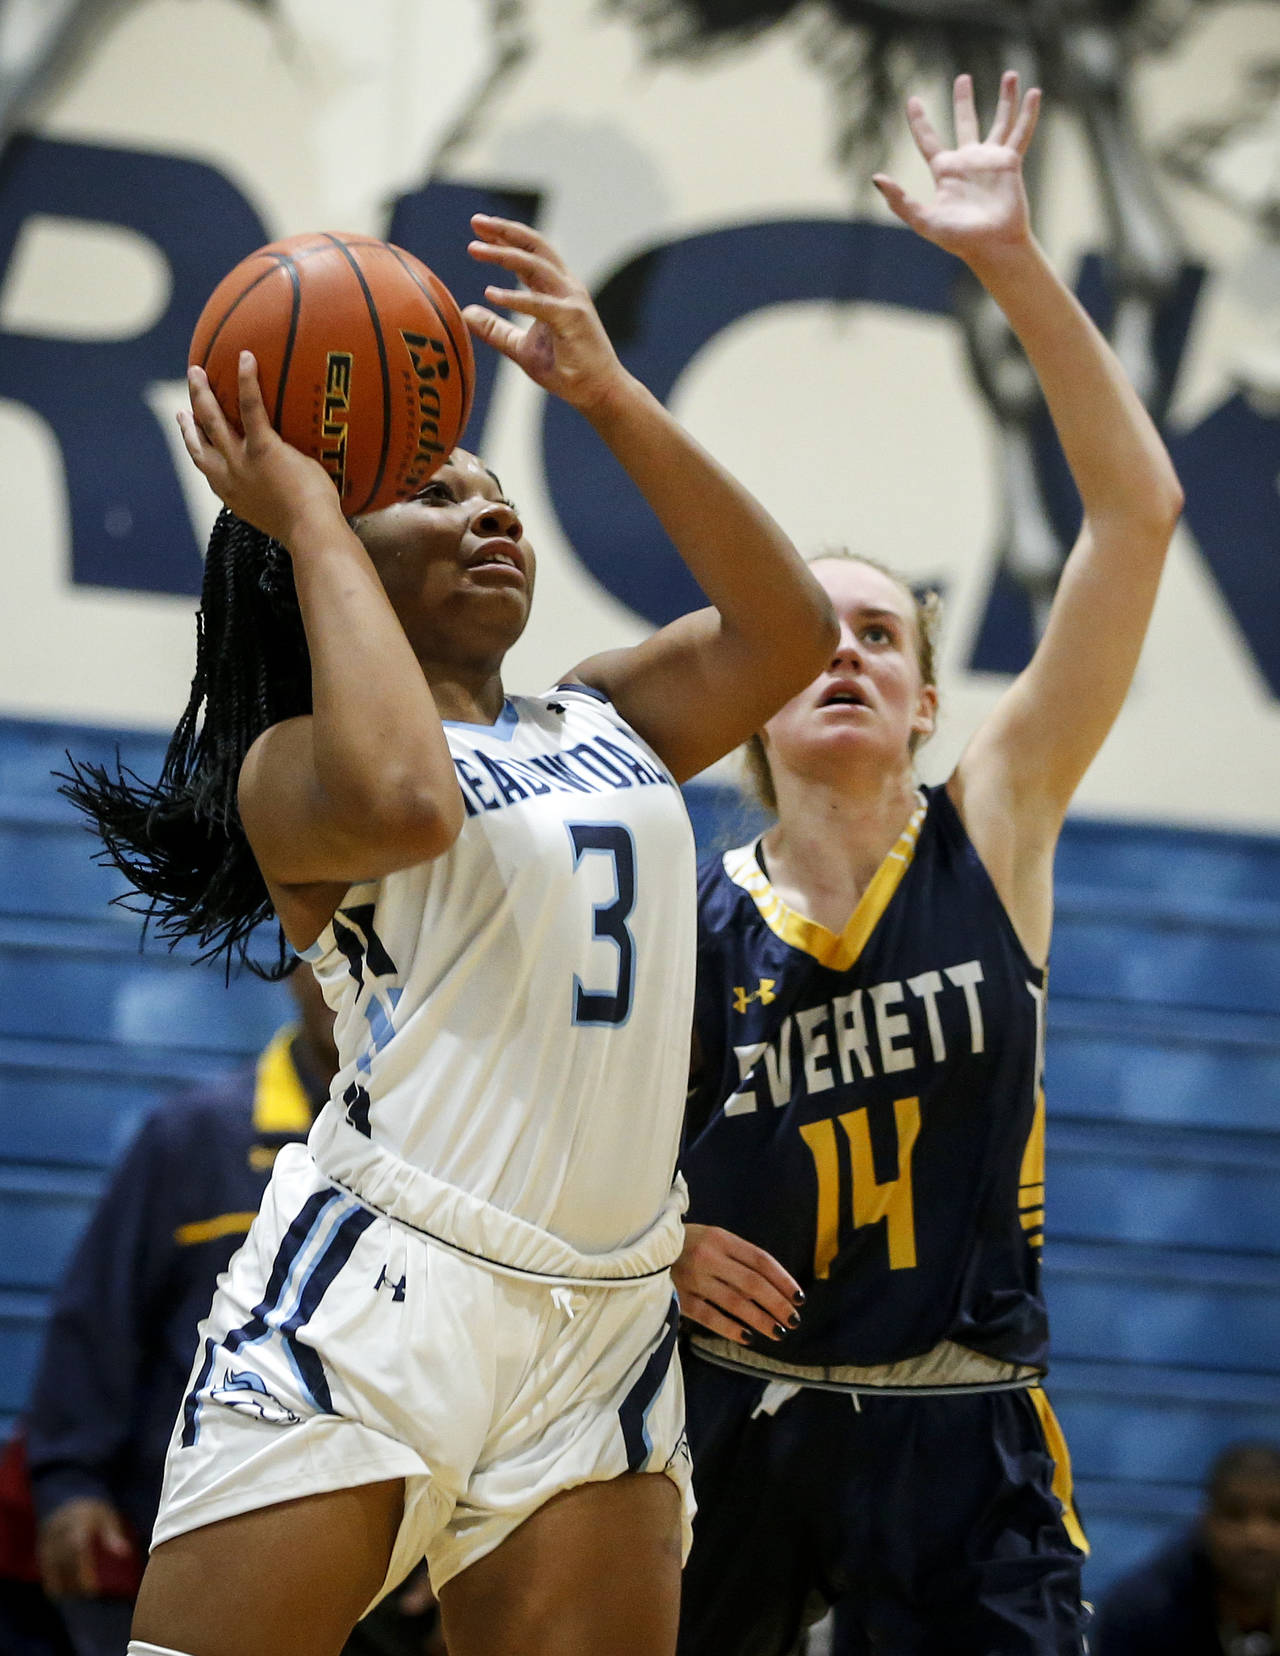 Meadowdale's Alicia Morrison (3) goes up for a shot as Everett's Kate Pohland (14) defends during a game Nov. 28, 2017, at Meadowdale High School in Lynnwood. (Ian Terry / The Herald)